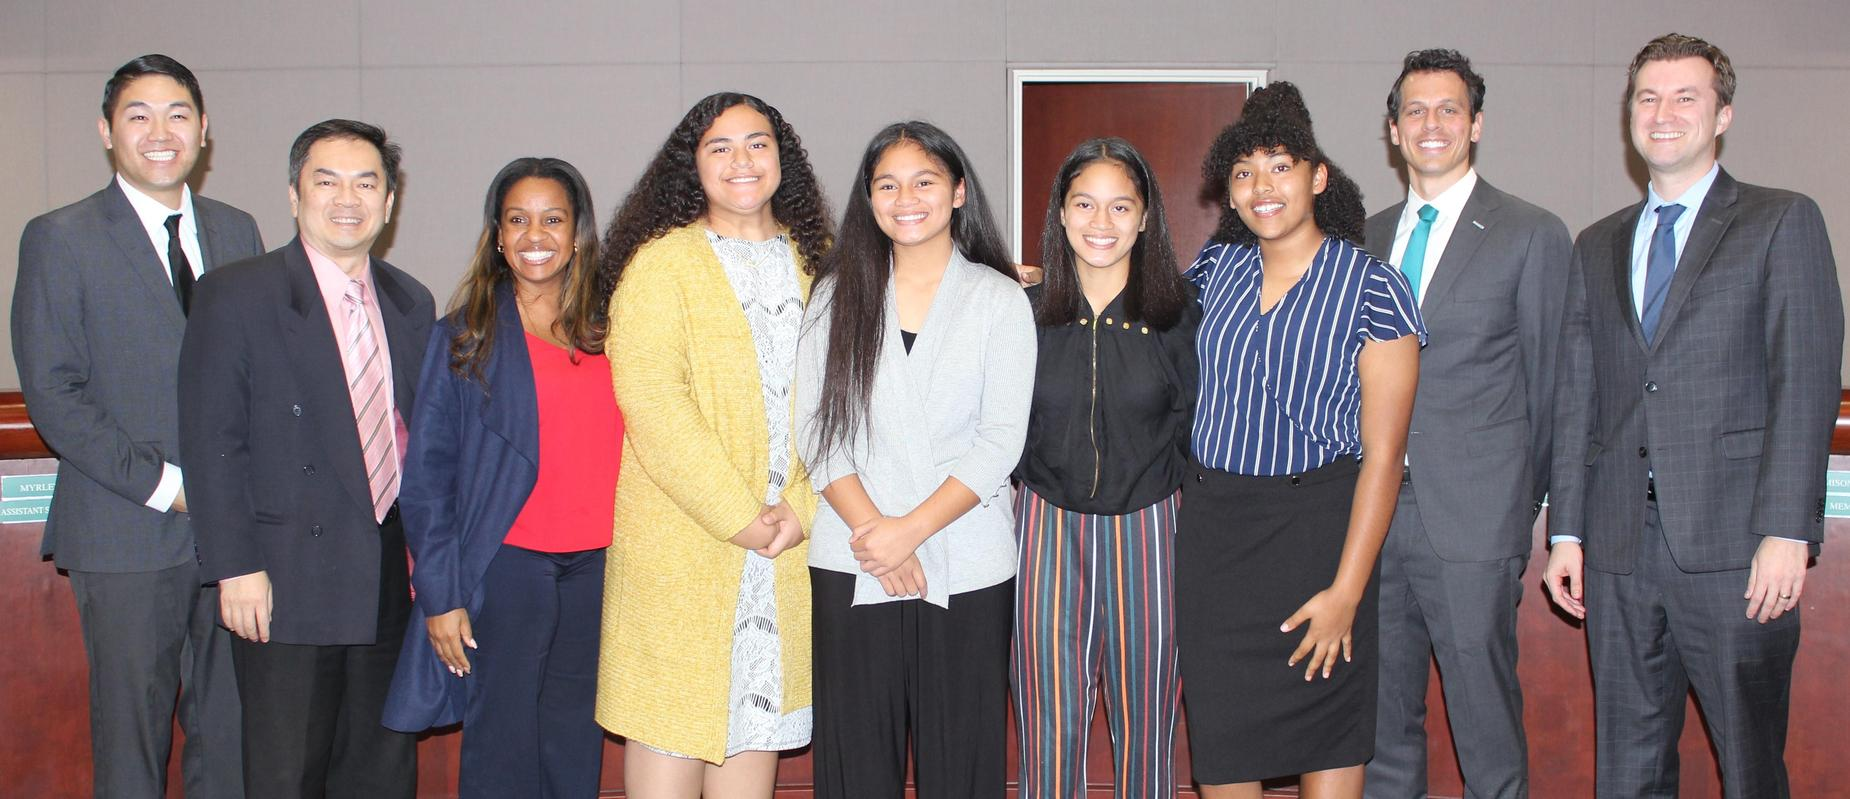 Warner students recognized at Board Meeting